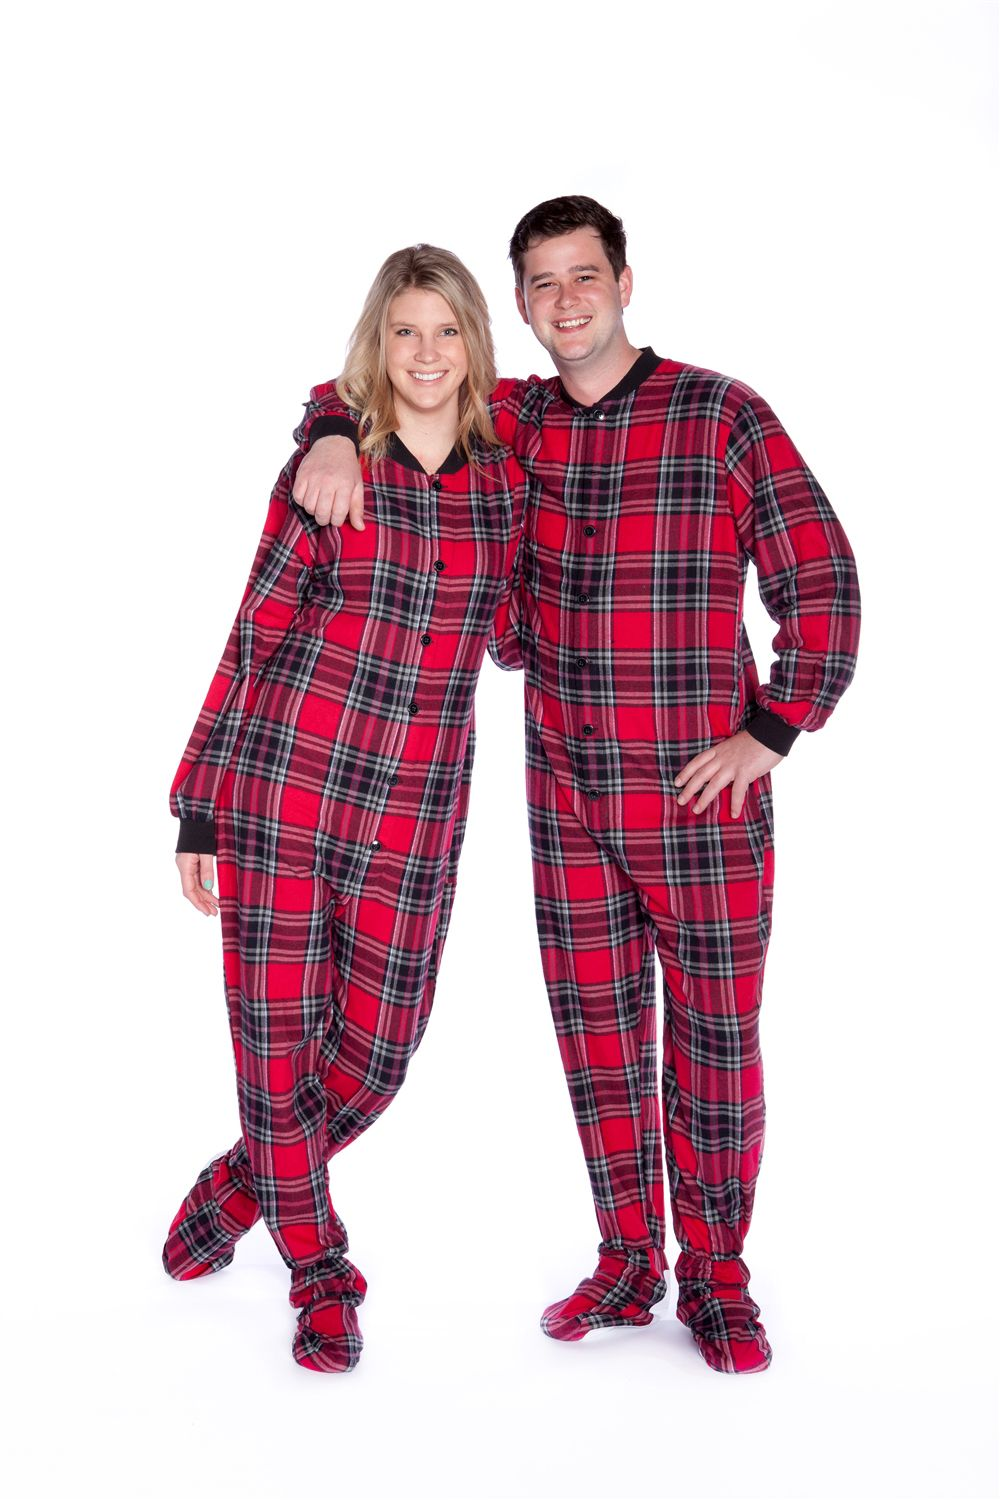 b2959280c6ce Big Feet Adult Onesie Footie Pajamas Red   Black Tartan Plaid Footed Onesie  Pajamas for Men or Women. 100% Double Brushed Cotton Flannel available with  butt ...